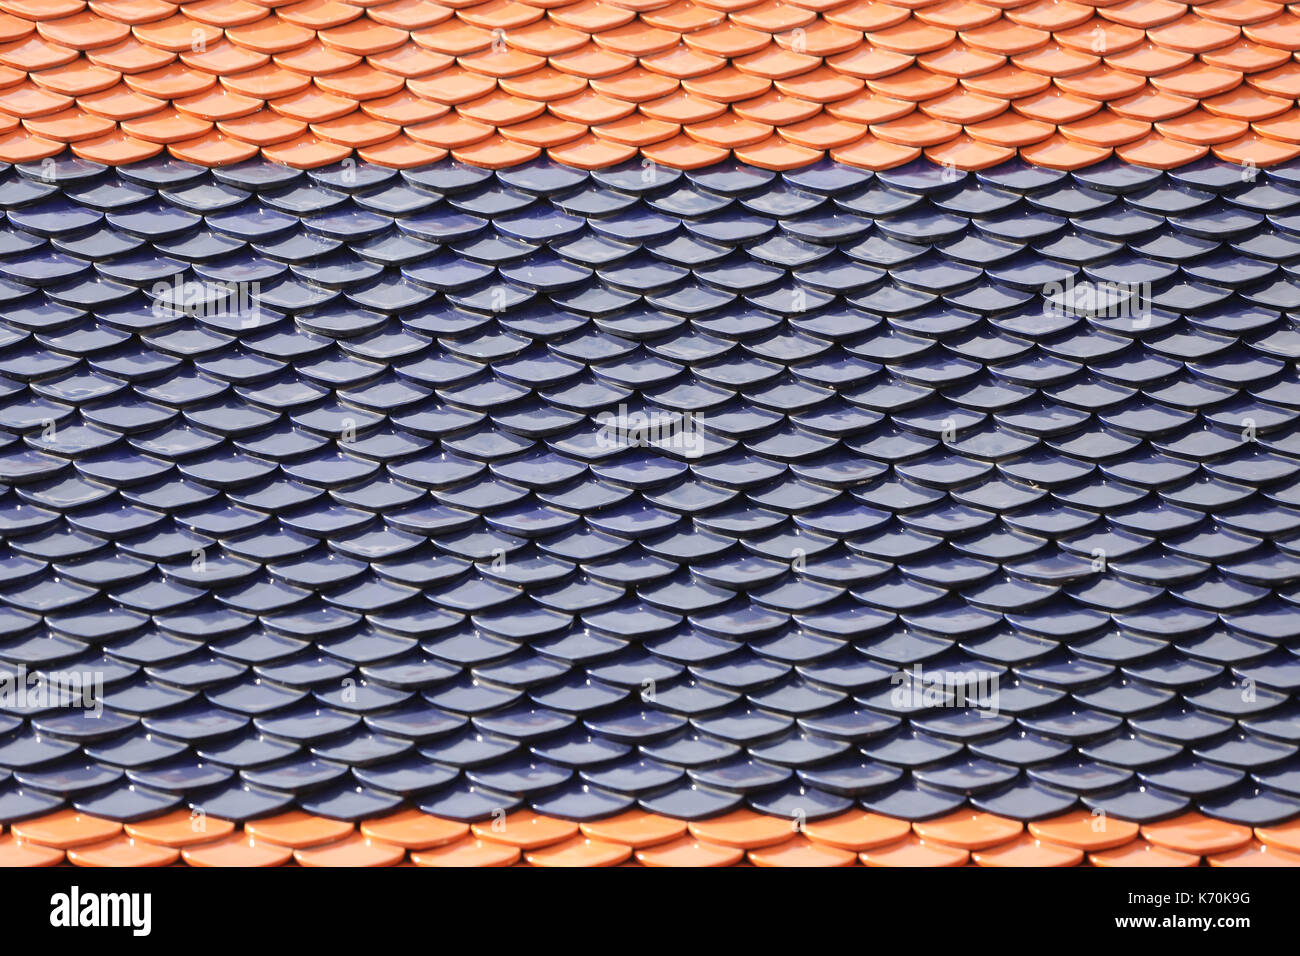 Roof Of The Thai Temple For The Design Background Stock Photo Alamy